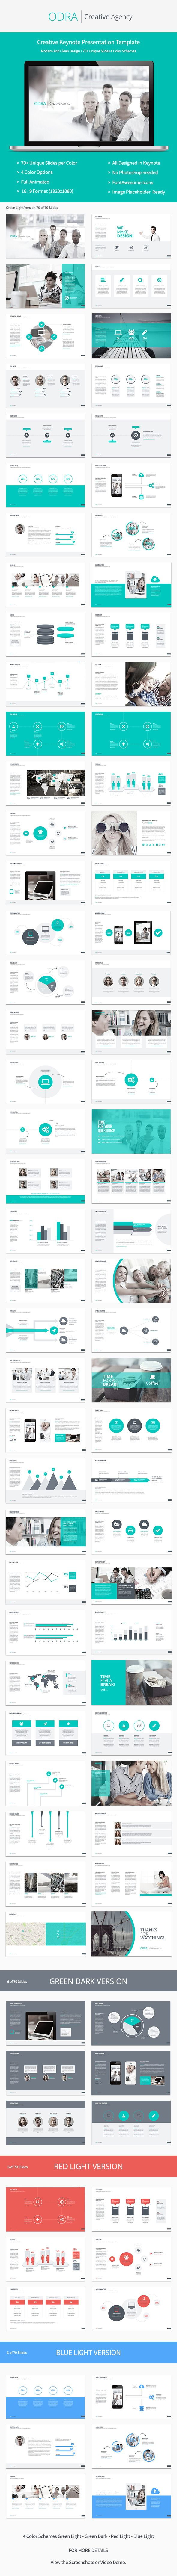 Odra | Creative Keynote Template #keynotetemplate #keynote #presentation Download: http://graphicriver.net/item/odra-creative-keynote-template/8157947?ref=ksioks